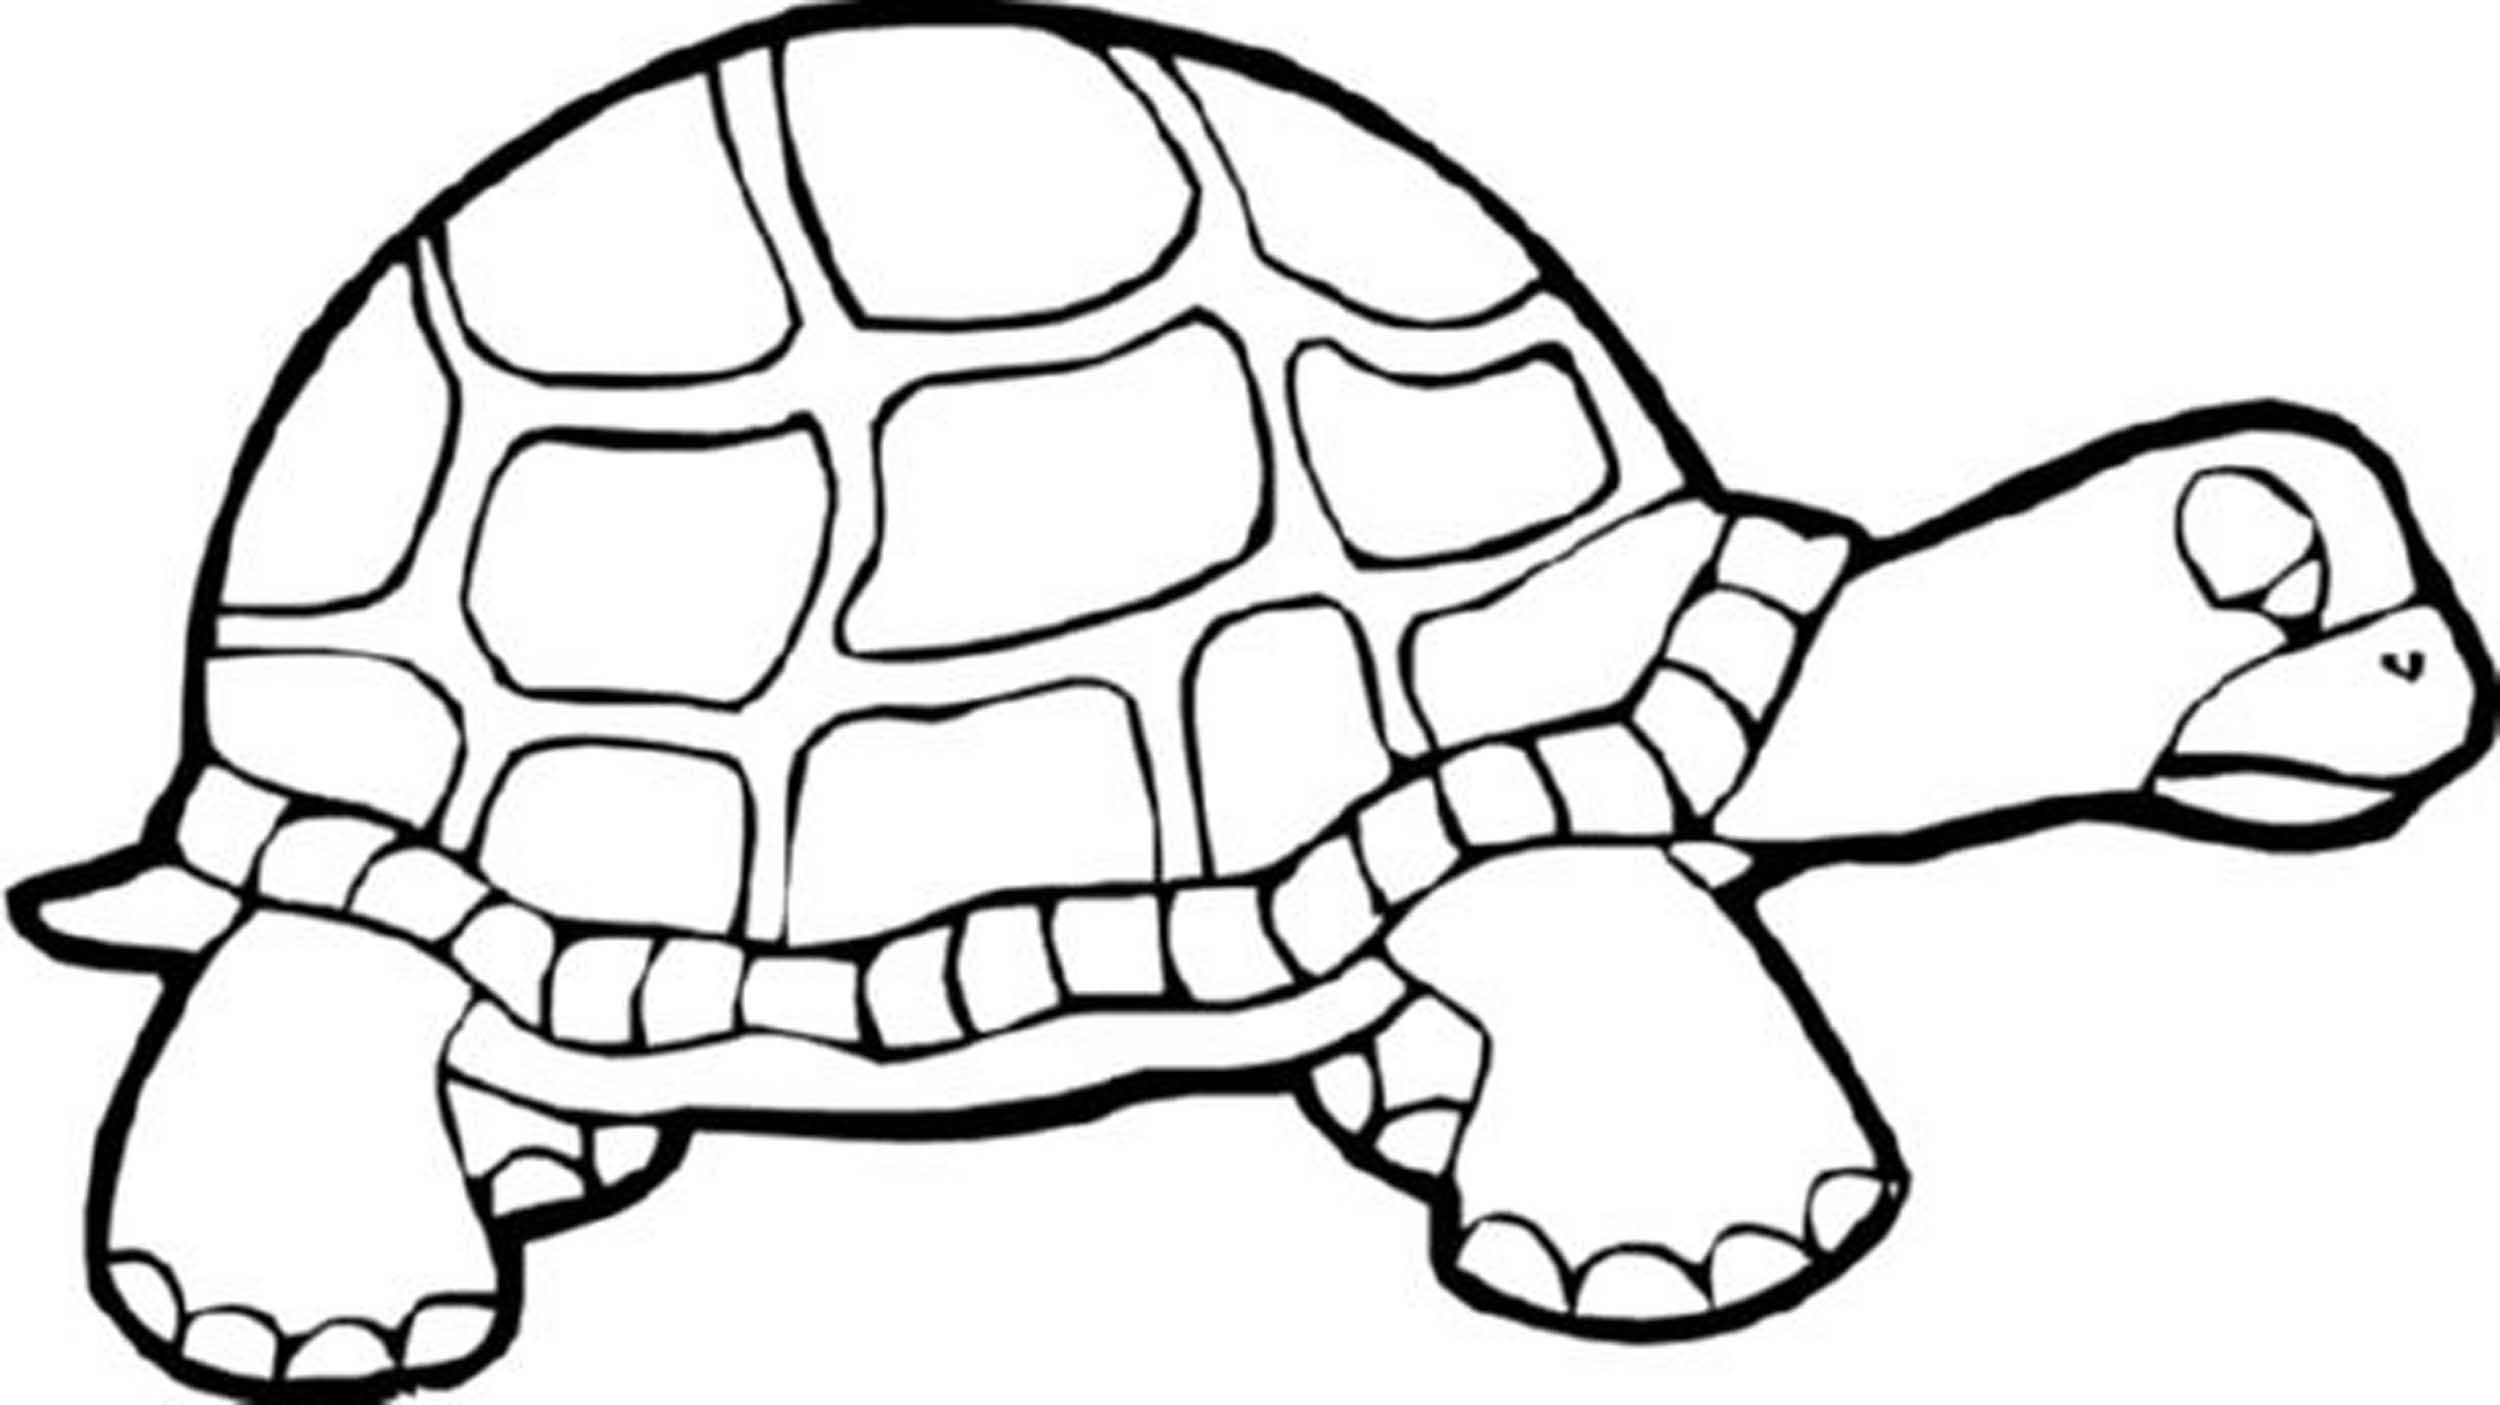 Sea Turtle Line Drawing At Getdrawings